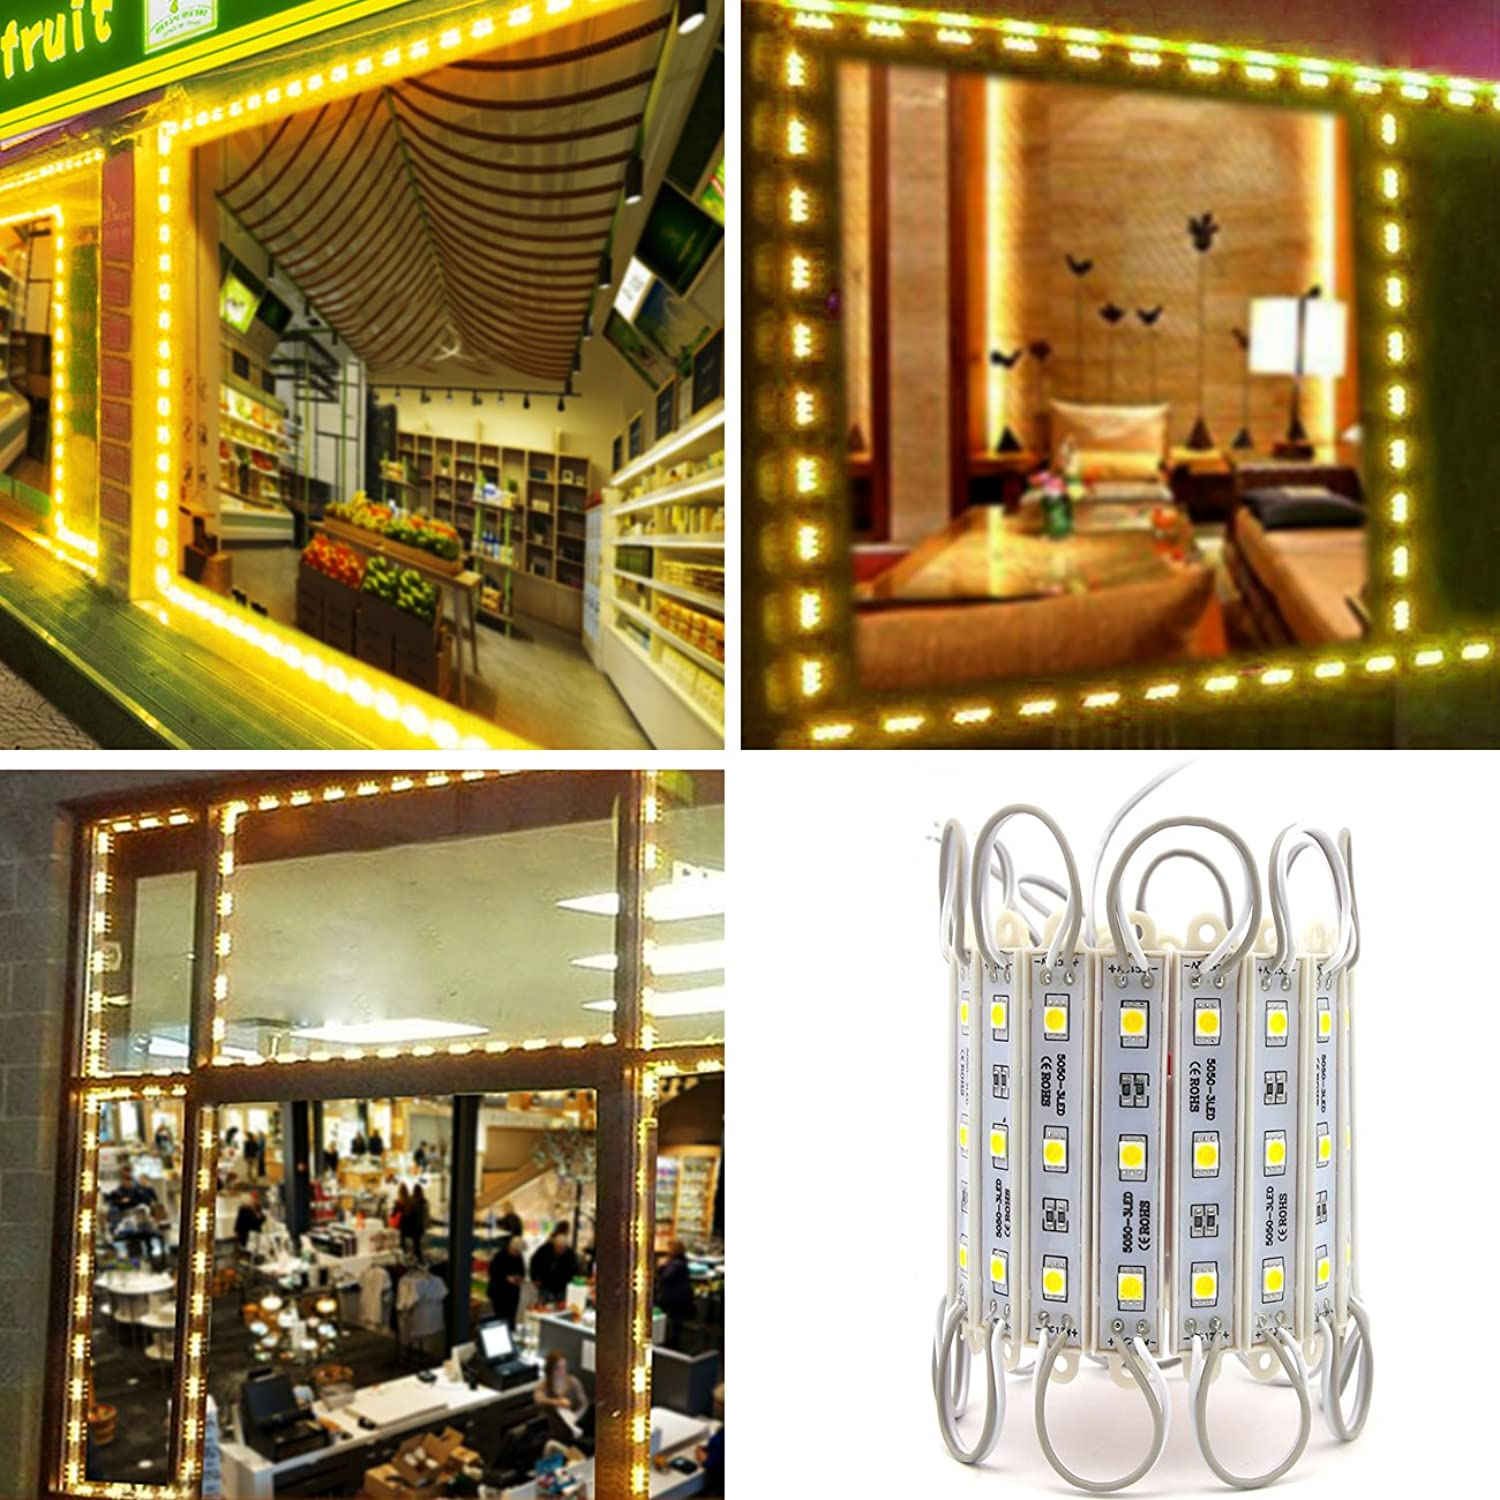 LED Storefront Lights, Pomelotree 40ft 80 Pieces Letter Adgreenising Sign, 4 Set 5050 SMD LED module Window Strip Light (RGB light)